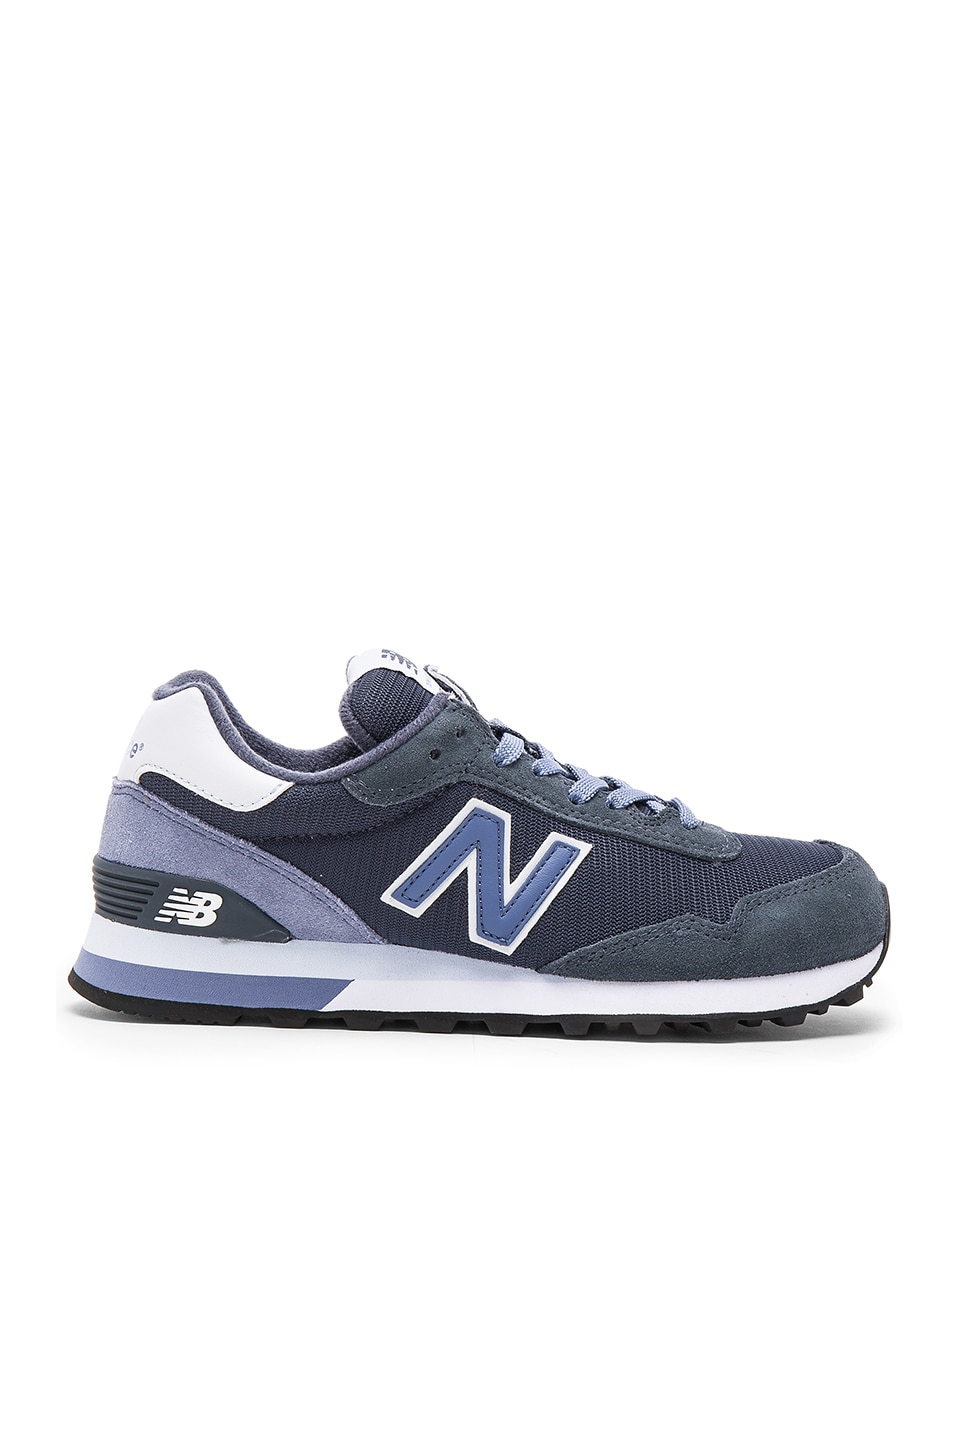 New Balance Classics Modern Classics Collection Sneaker in Grey & Lavender